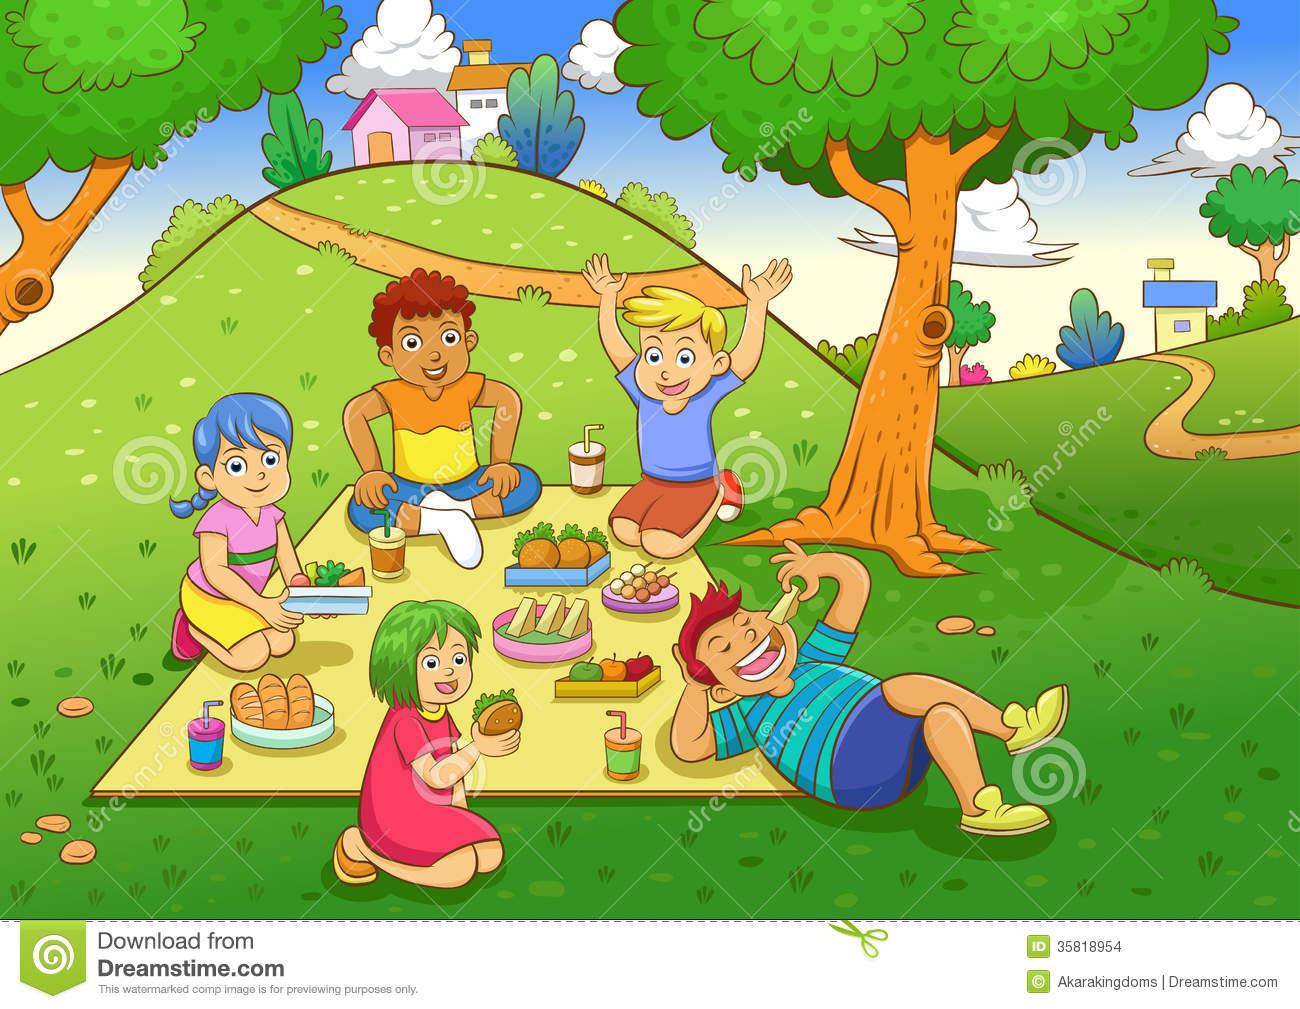 Picnic spot clipart 20 free Cliparts | Download images on ...